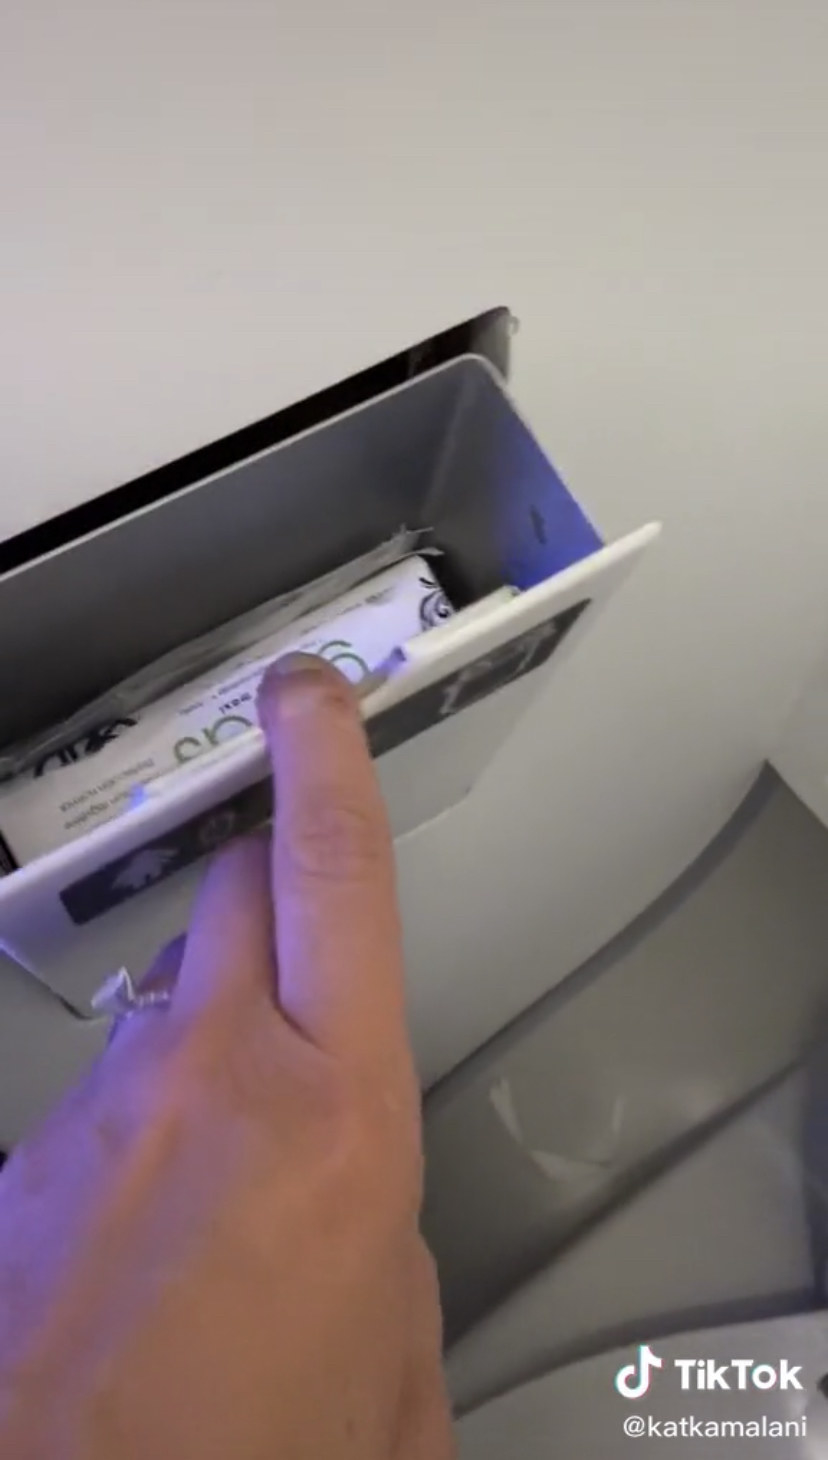 A small compartment in an airplane lavatory being opened to reveal menstrual hygiene products